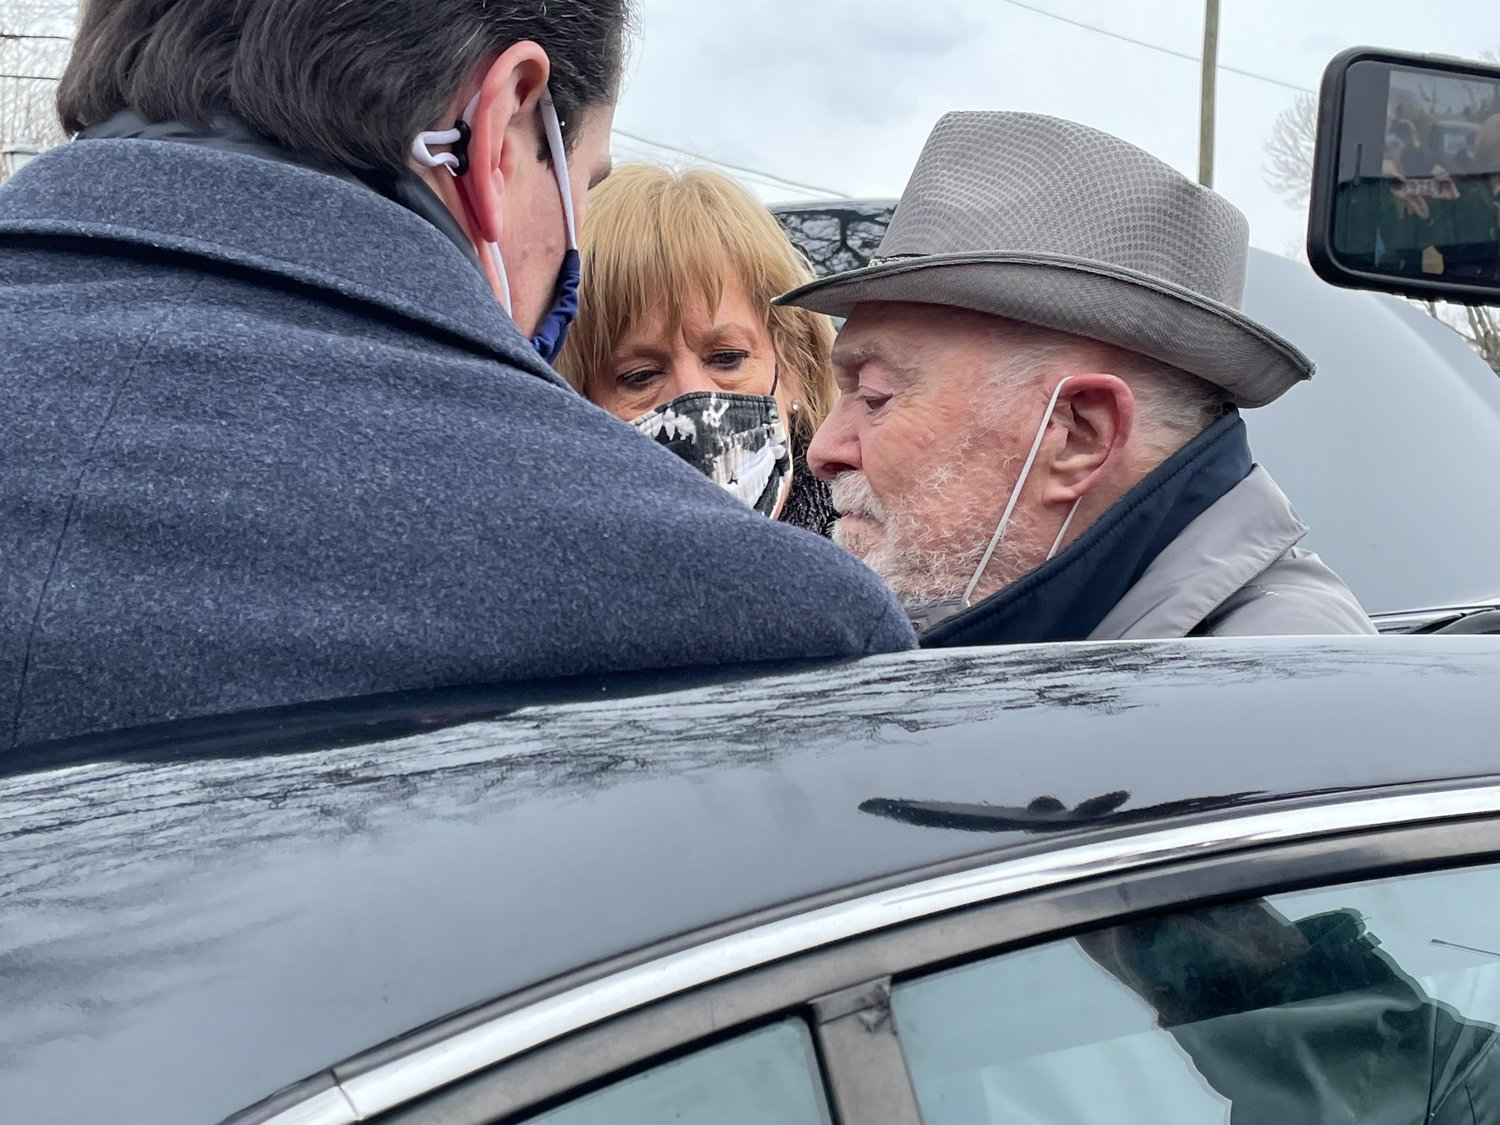 Woodmere resident and Holocaust survivor Jack Rybsztajn is helped from the car by State Sen. Todd Kaminsky and Gural JCC Associate Executive Director Cathy Byrne.